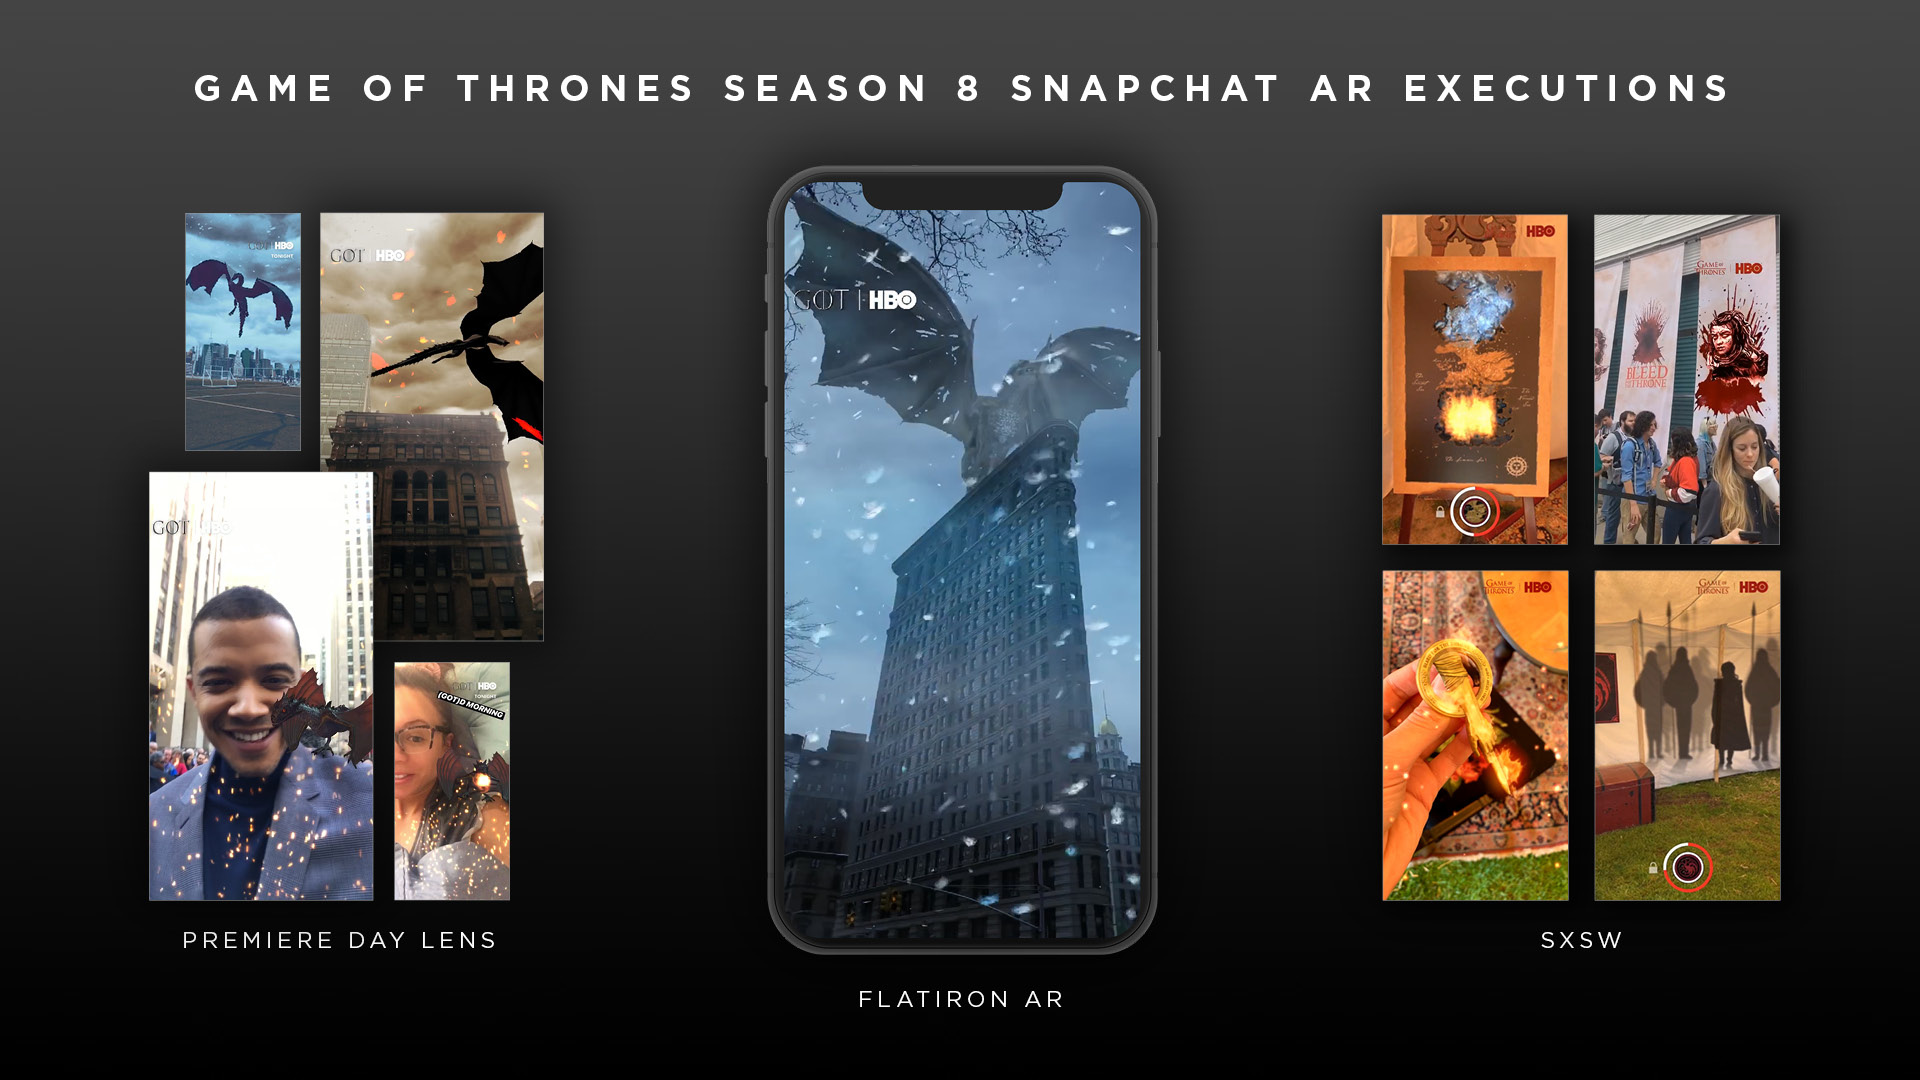 Thumbnail for Game of Thrones: Snapchat Executions